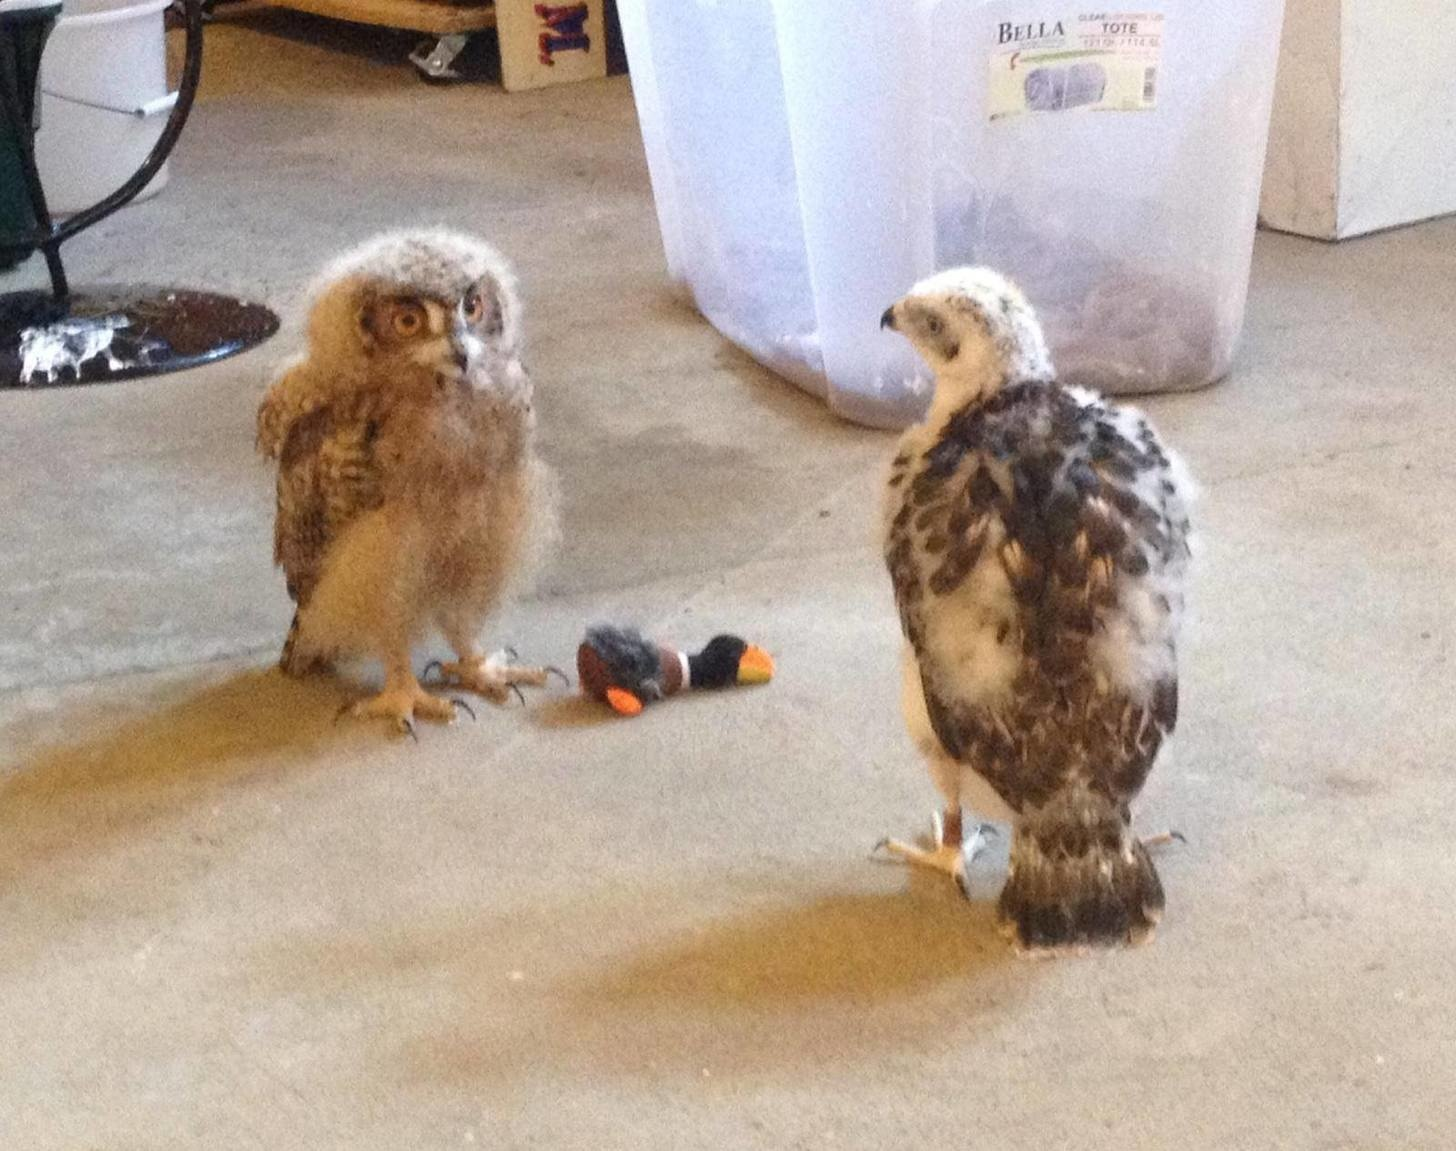 4 - A baby goshawk in the middle of a play-date with a baby owl.